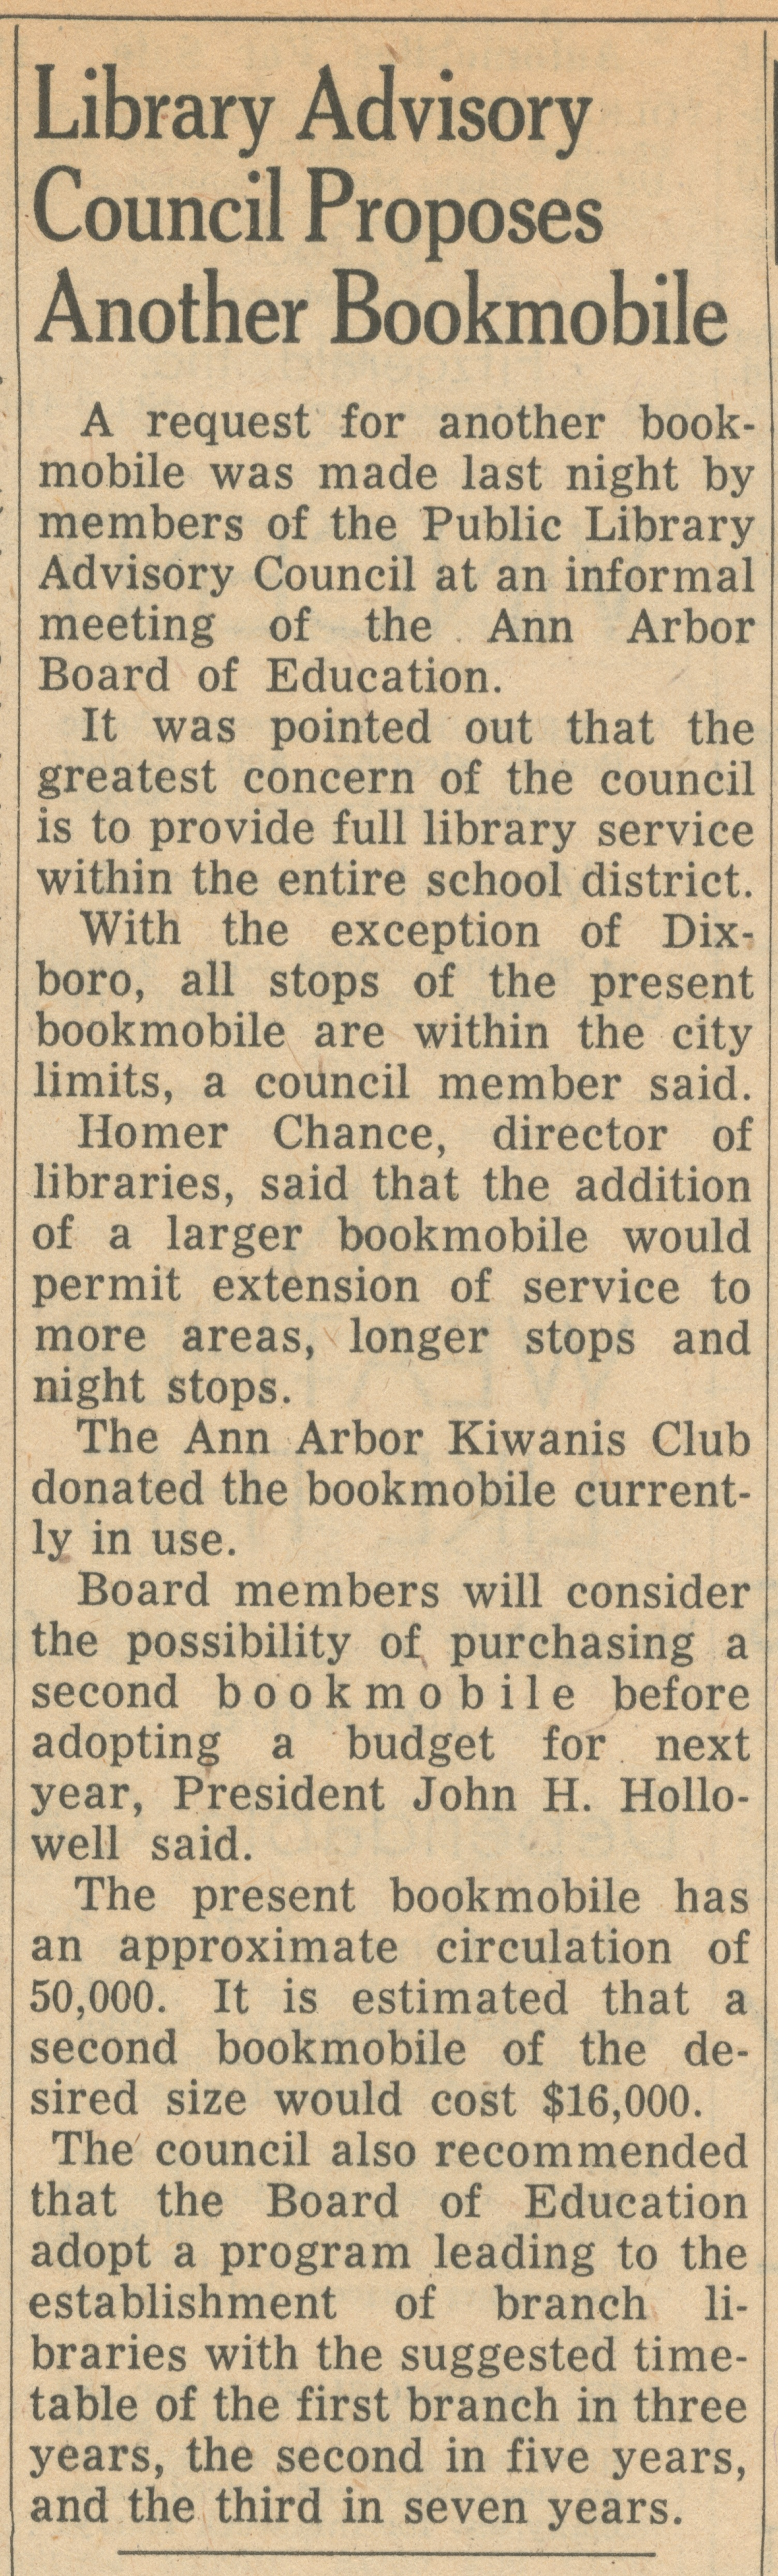 Library Advisory Council Proposes Another Bookmobile image